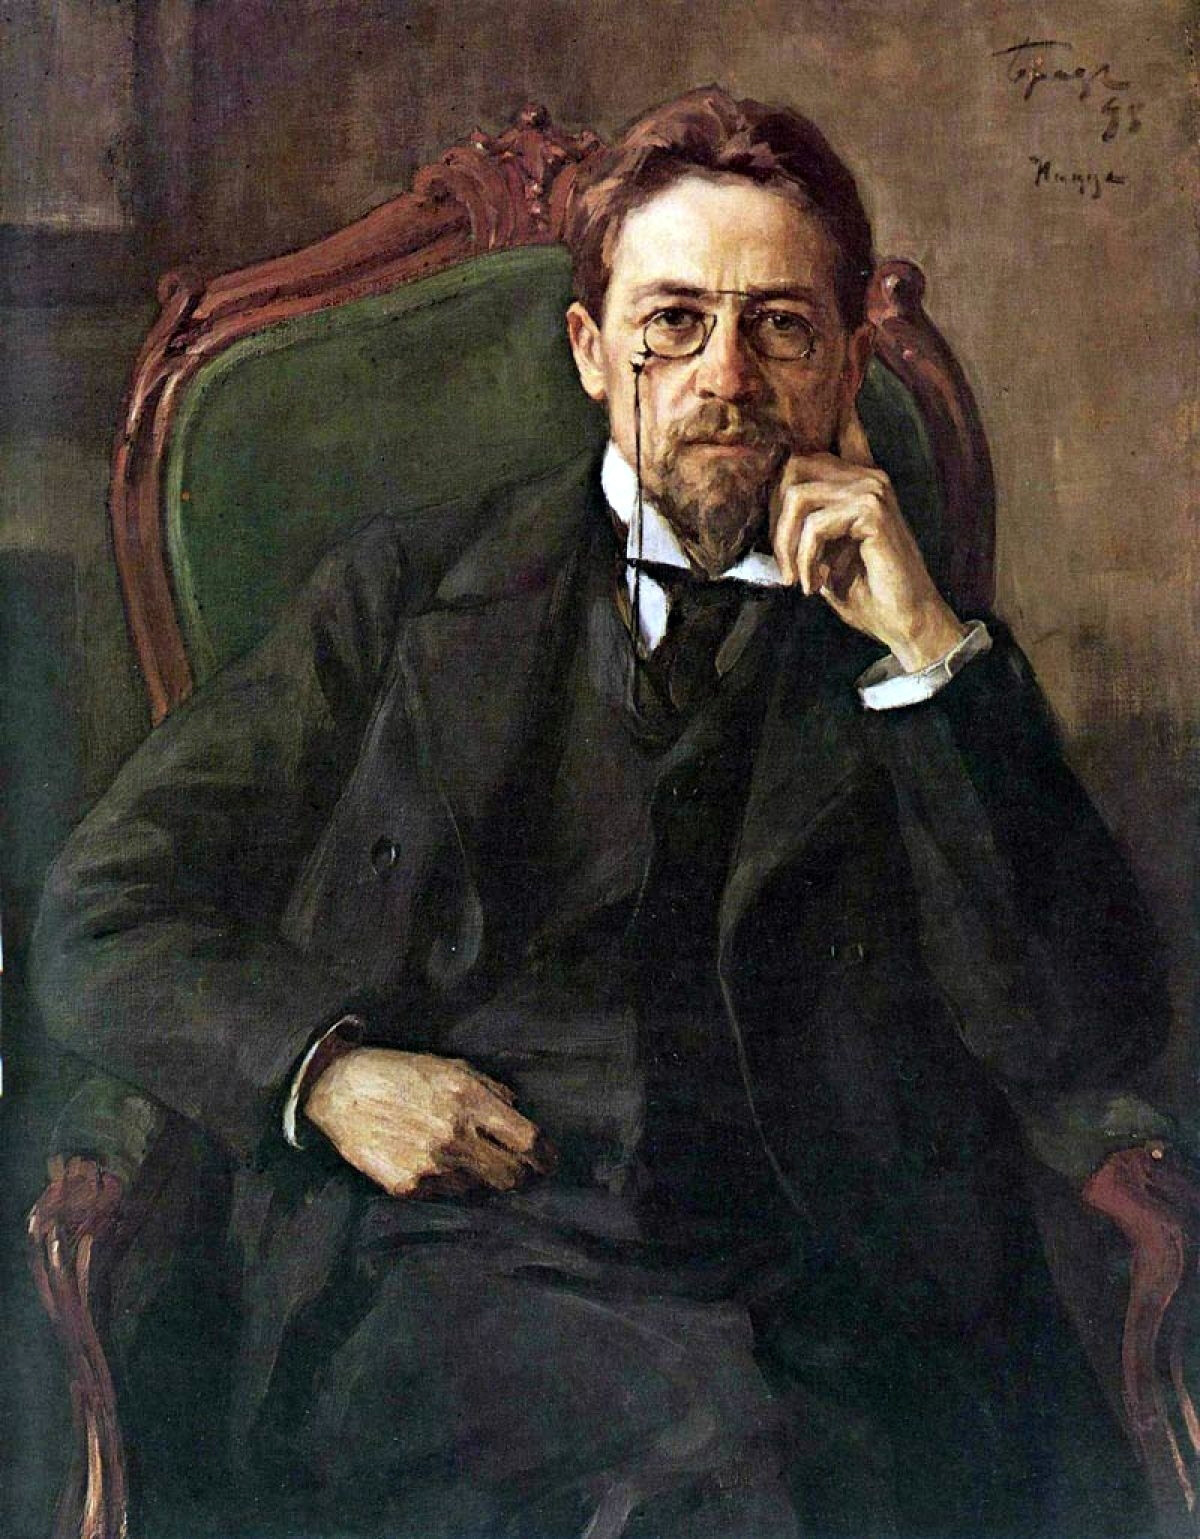 Portrait of Anton Chekhov, by Osip Braz.